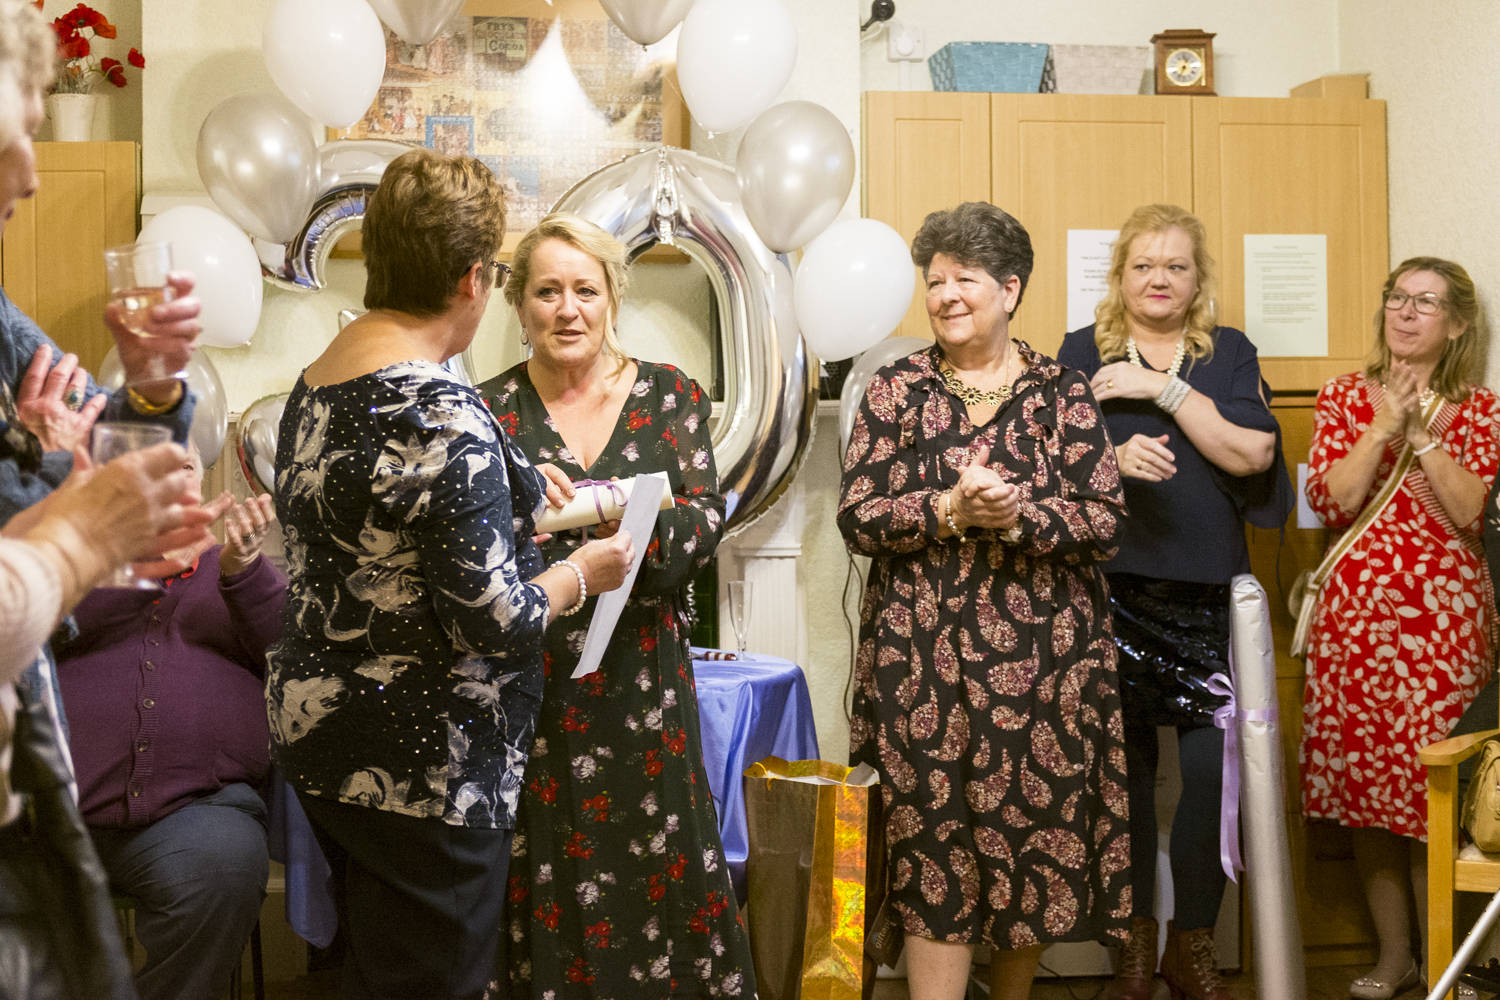 Harrowby-Lodge-Nursing-Home-30th-Anniversary-32.jpg